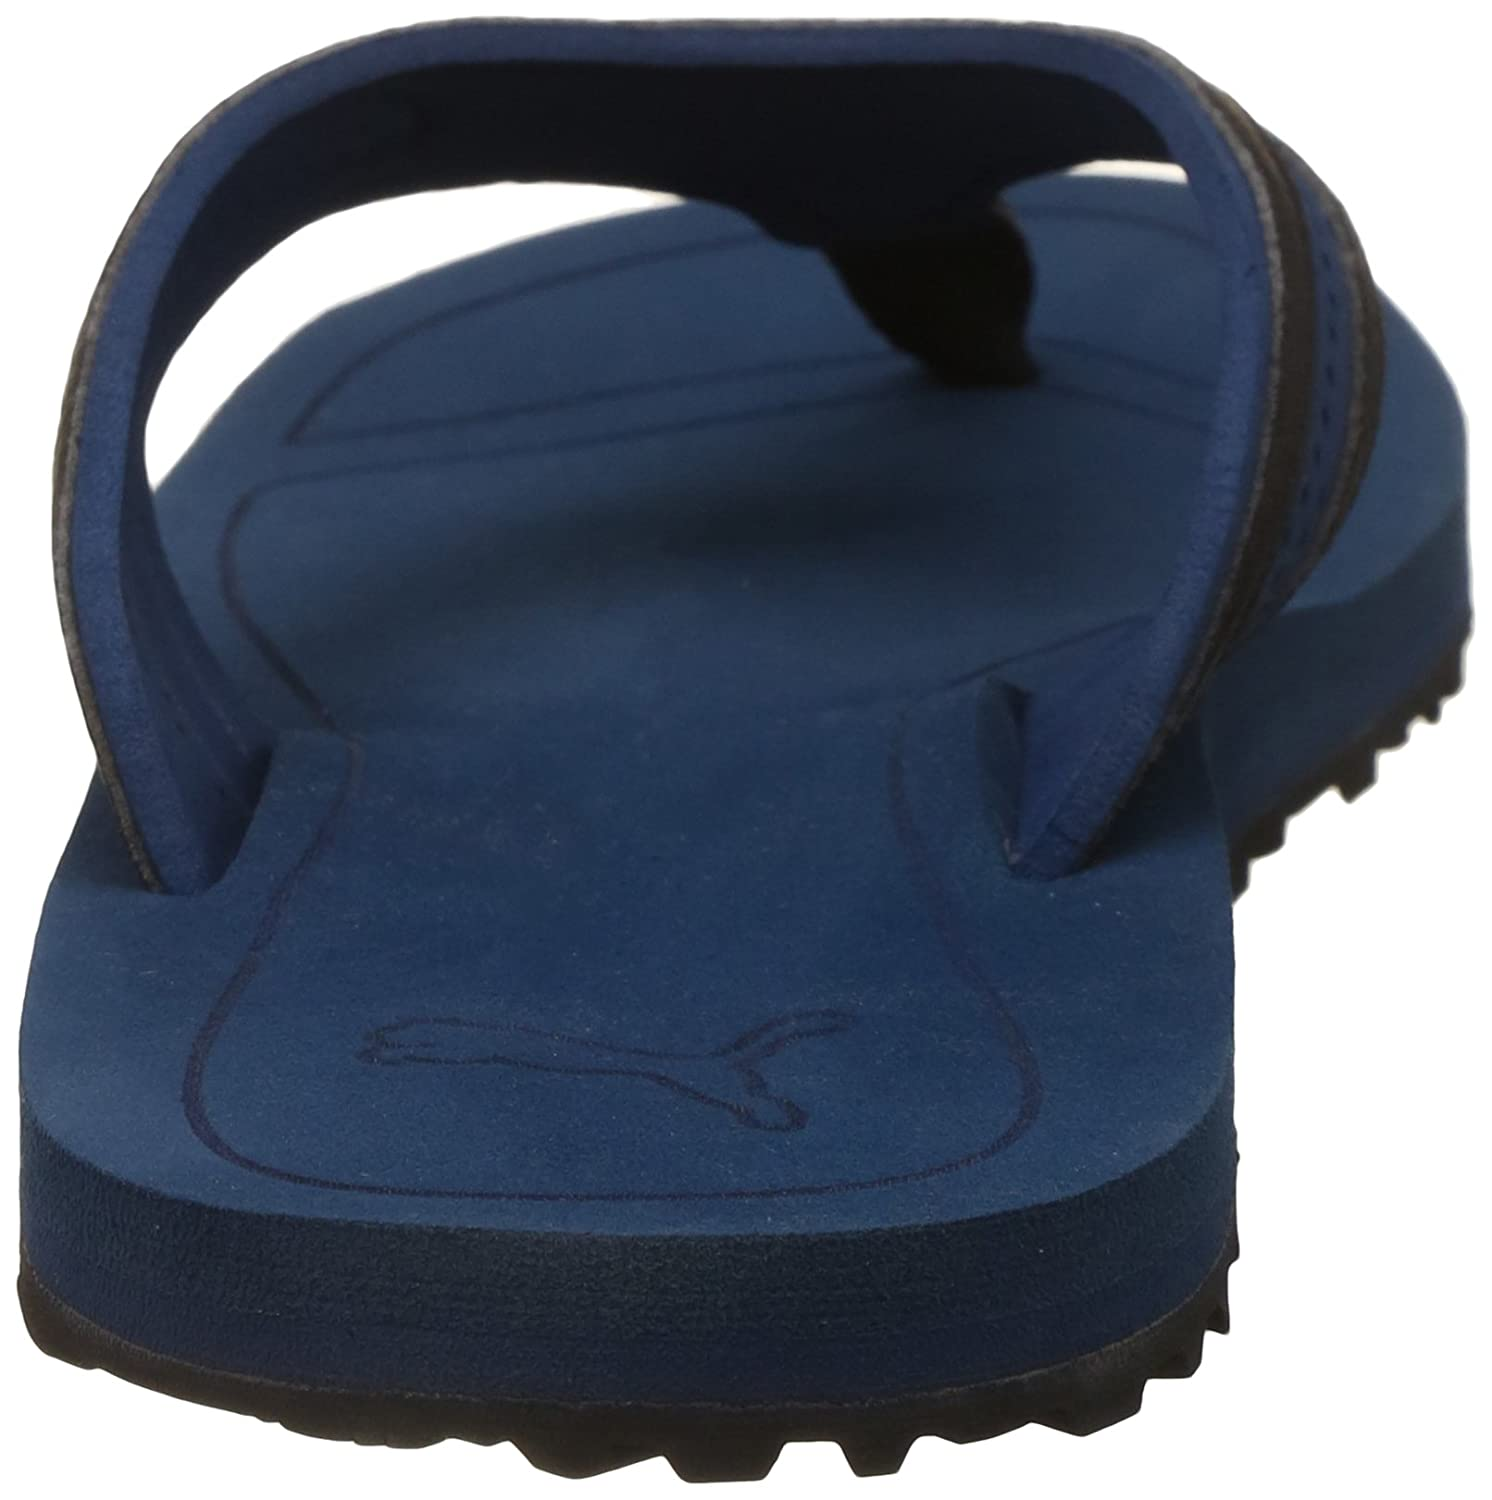 6b541dafe Puma Men s Fling Tech Flip Flops Thong Sandals  Buy Online at Low Prices in  India - Amazon.in